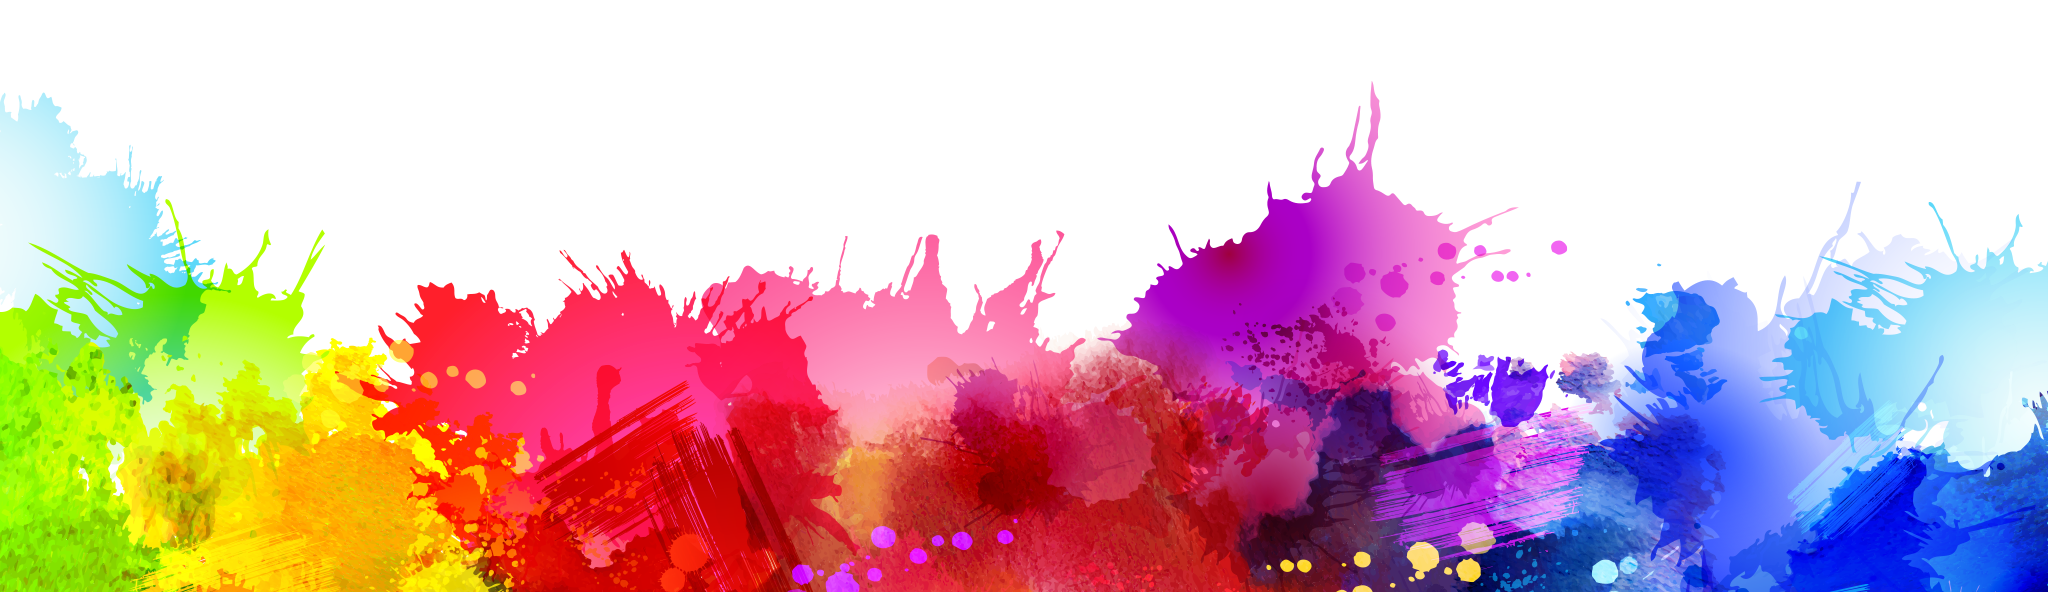 Holi Background Png, png collections at sccpre.cat.